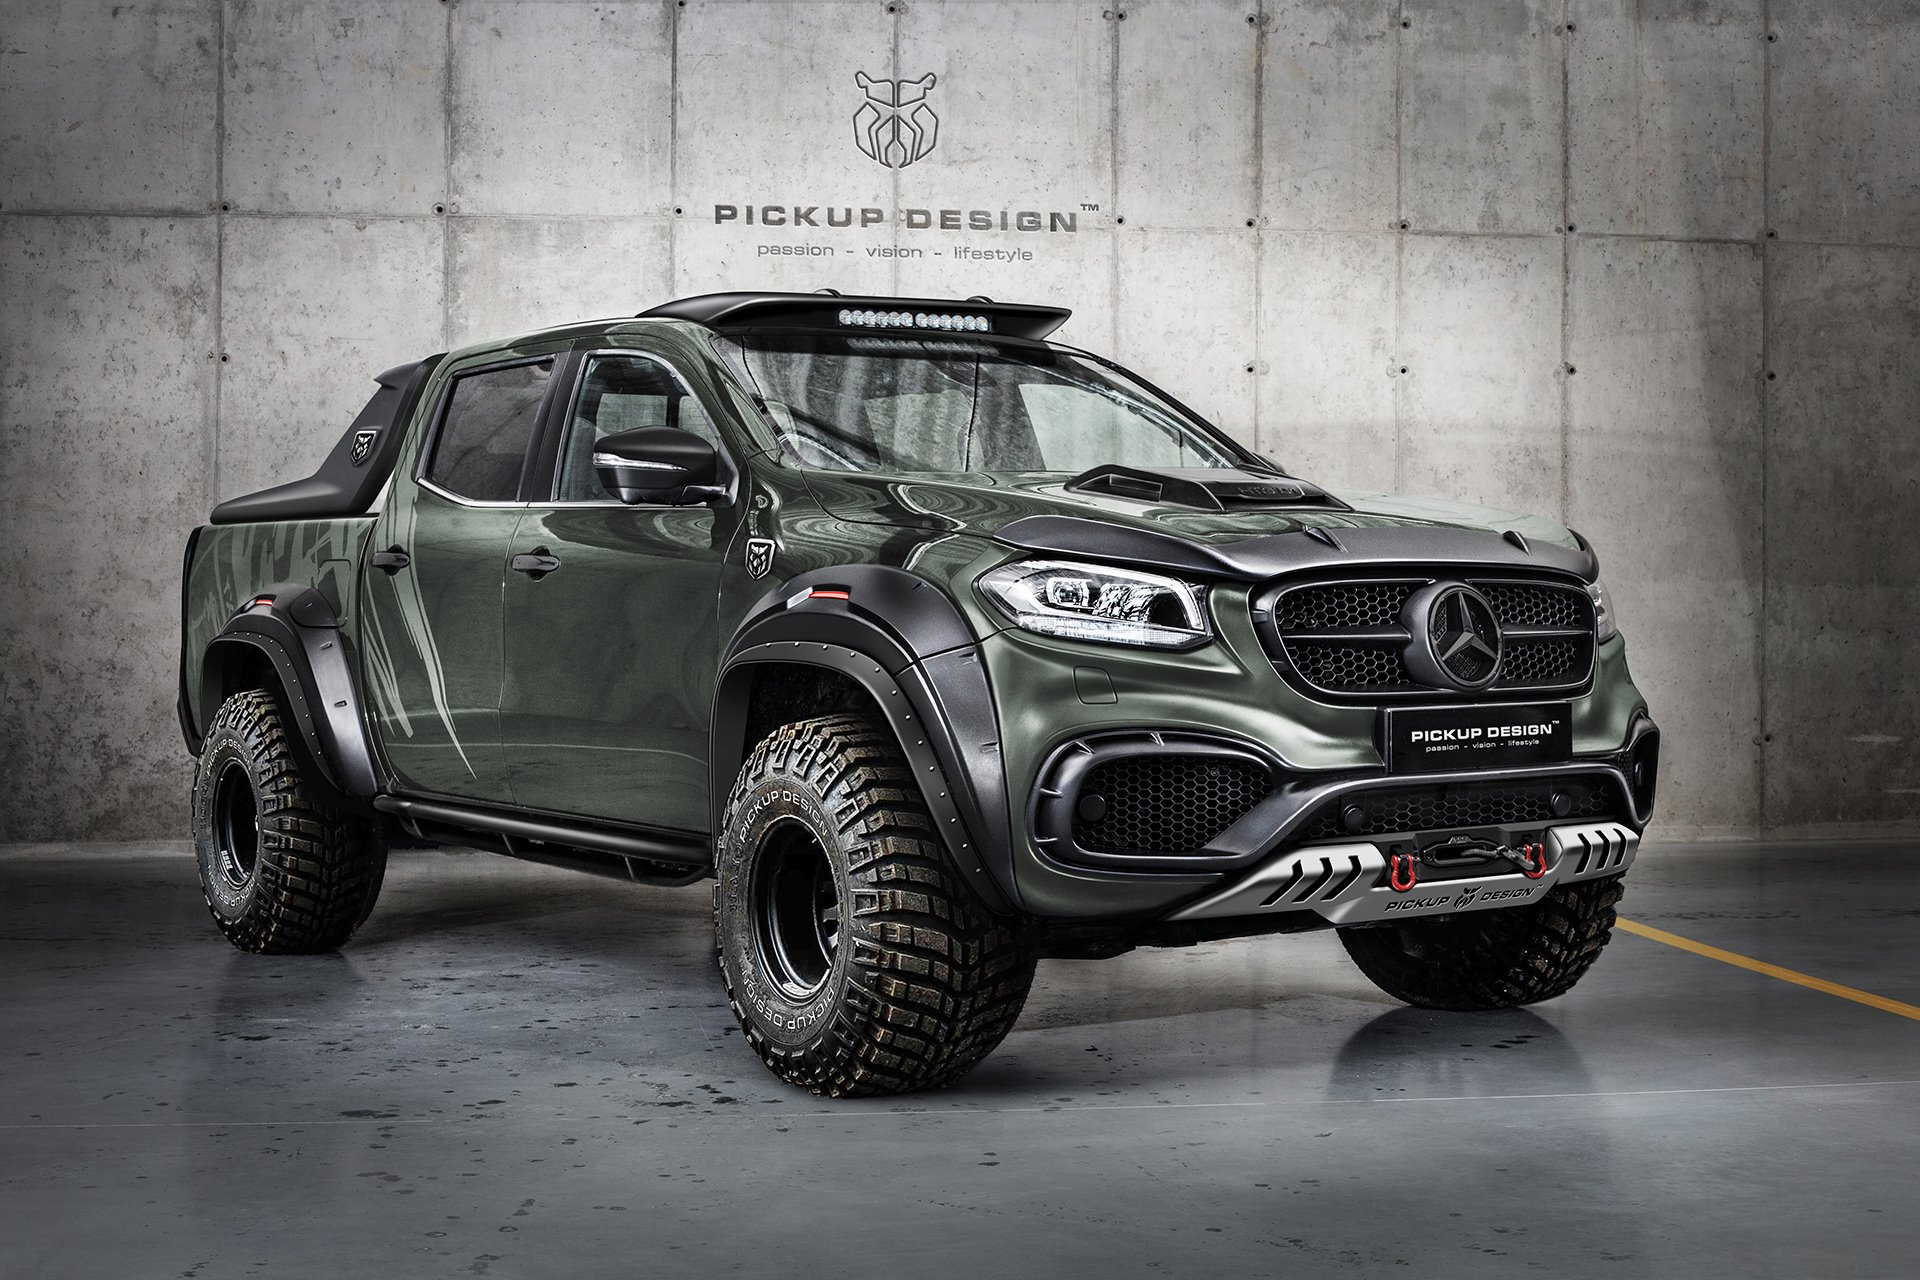 Mercedes X-Class Gets Pickup Design Body Kit and Carlex Luxury ...